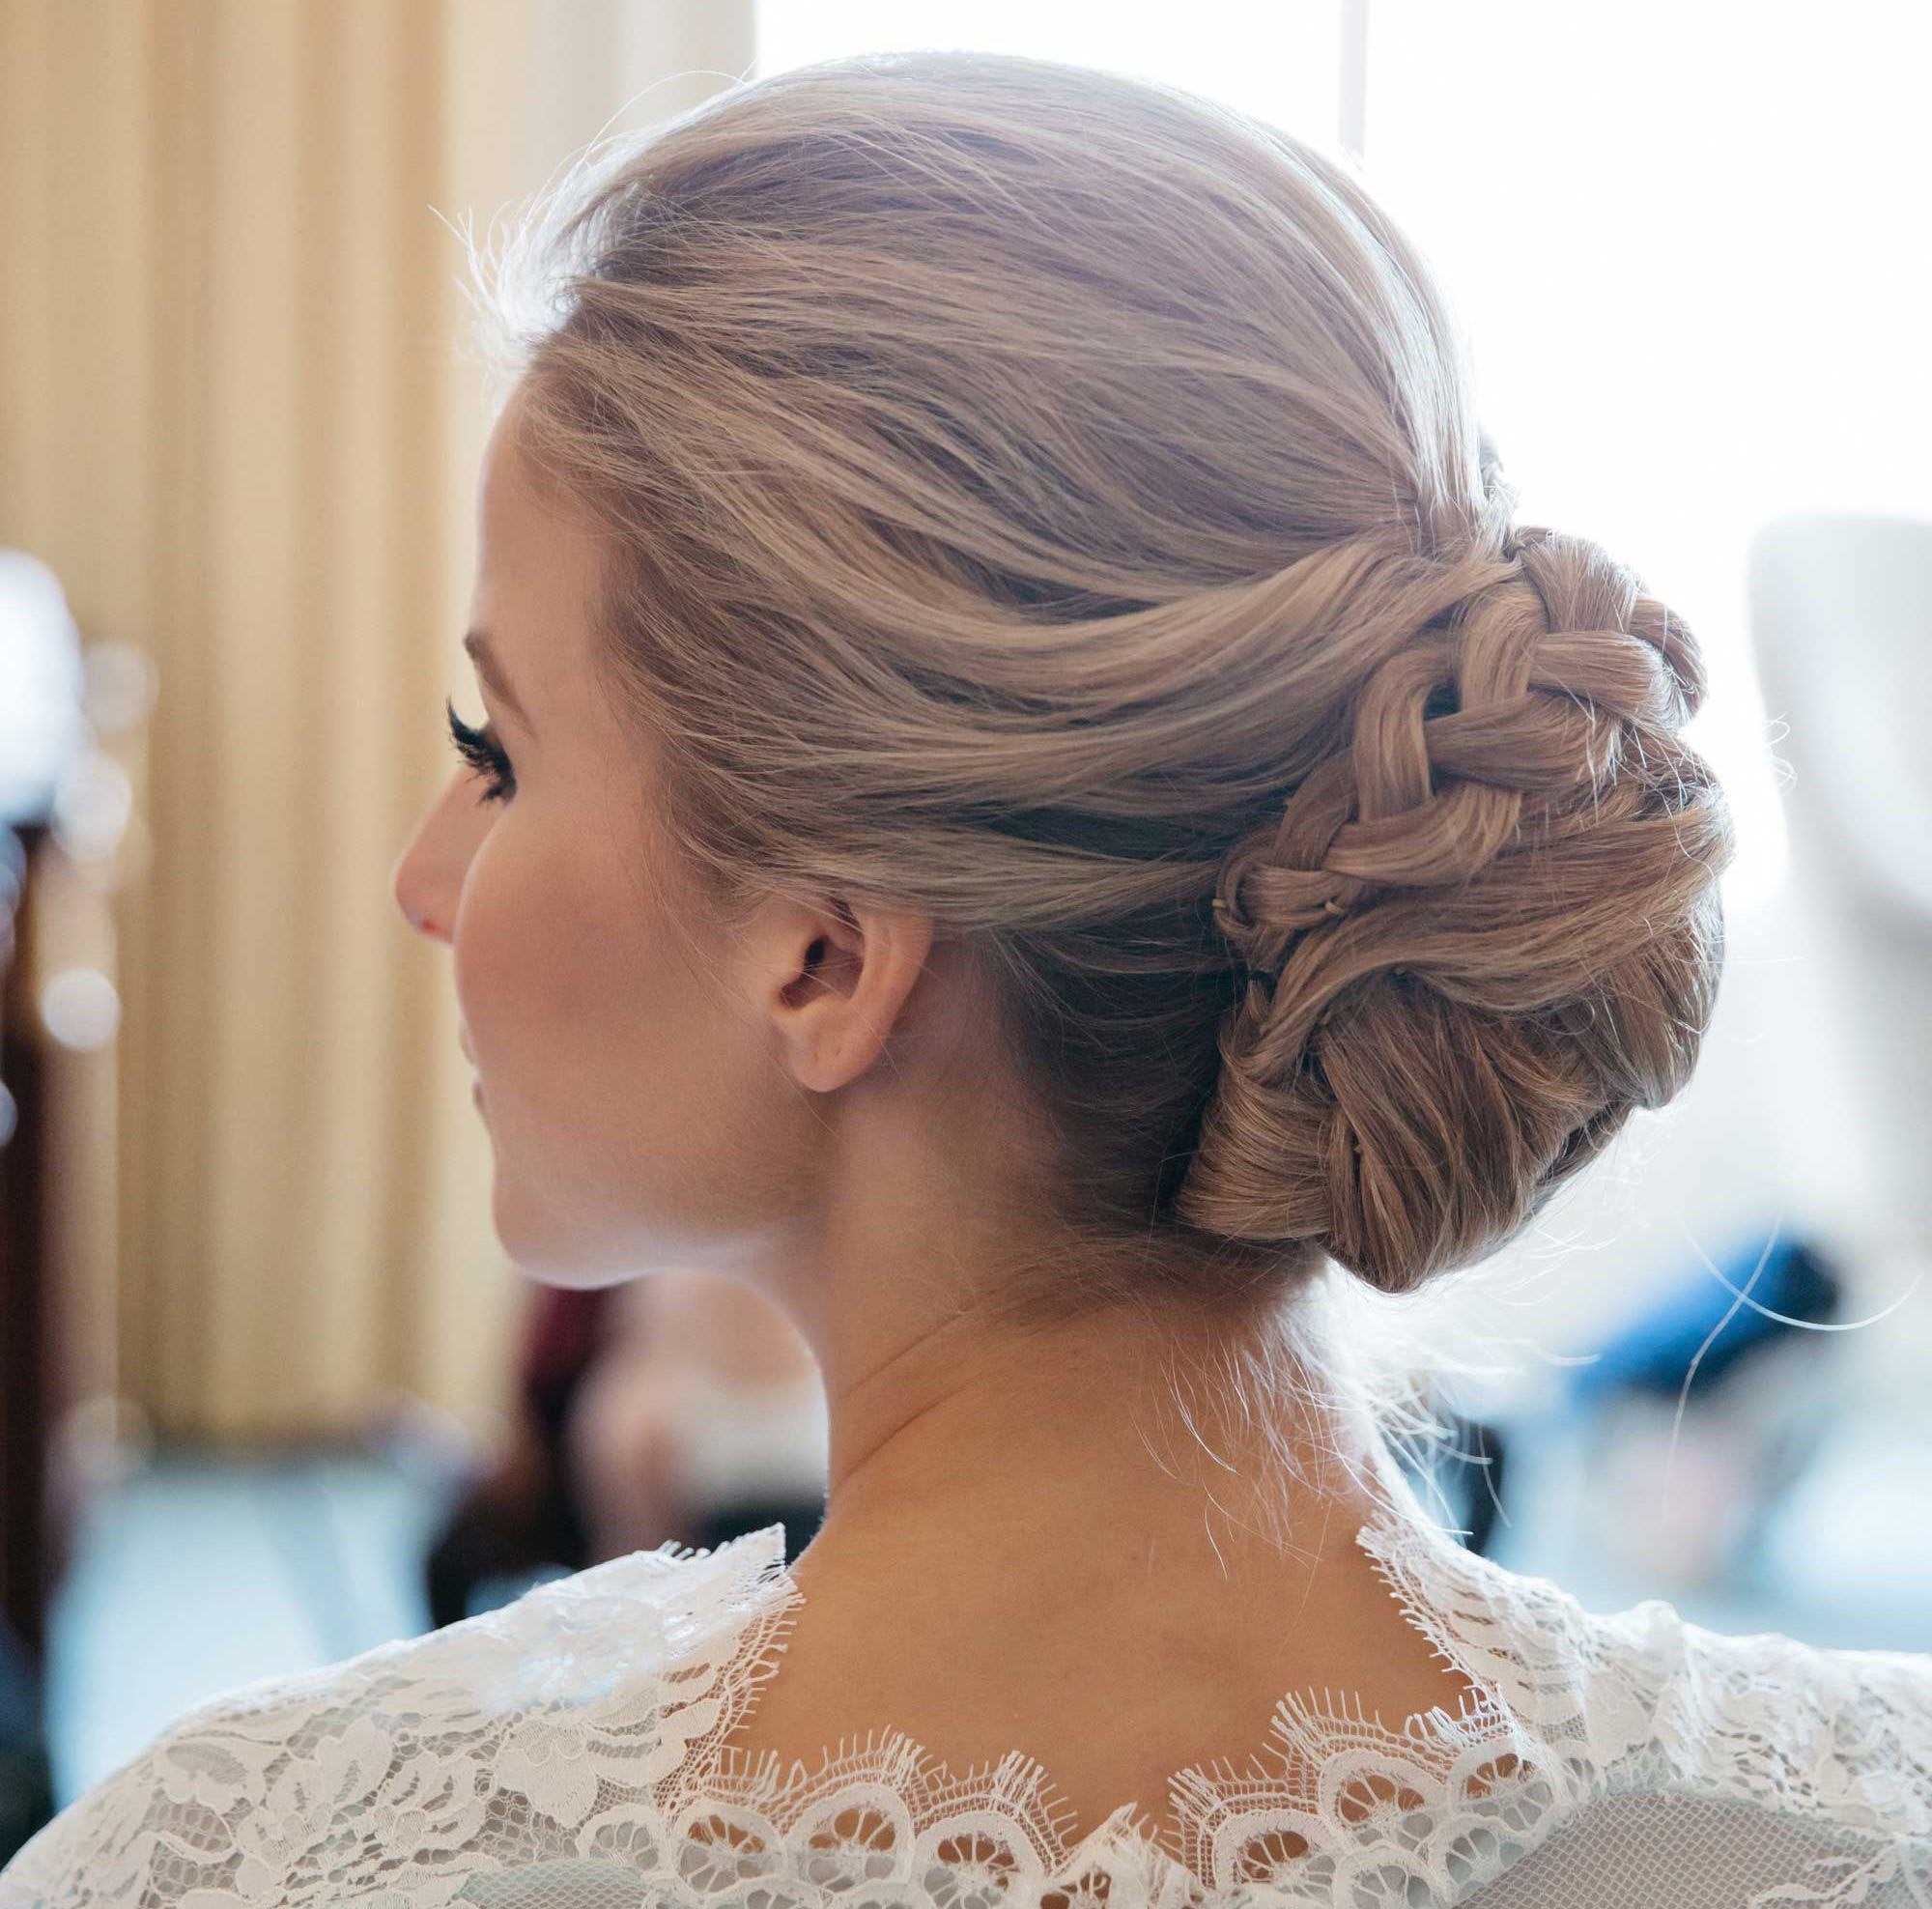 2017 Wedding Hairstyles With Braids With Braided Hairstyles: 5 Ideas For Your Wedding Look – Inside Weddings (View 13 of 15)